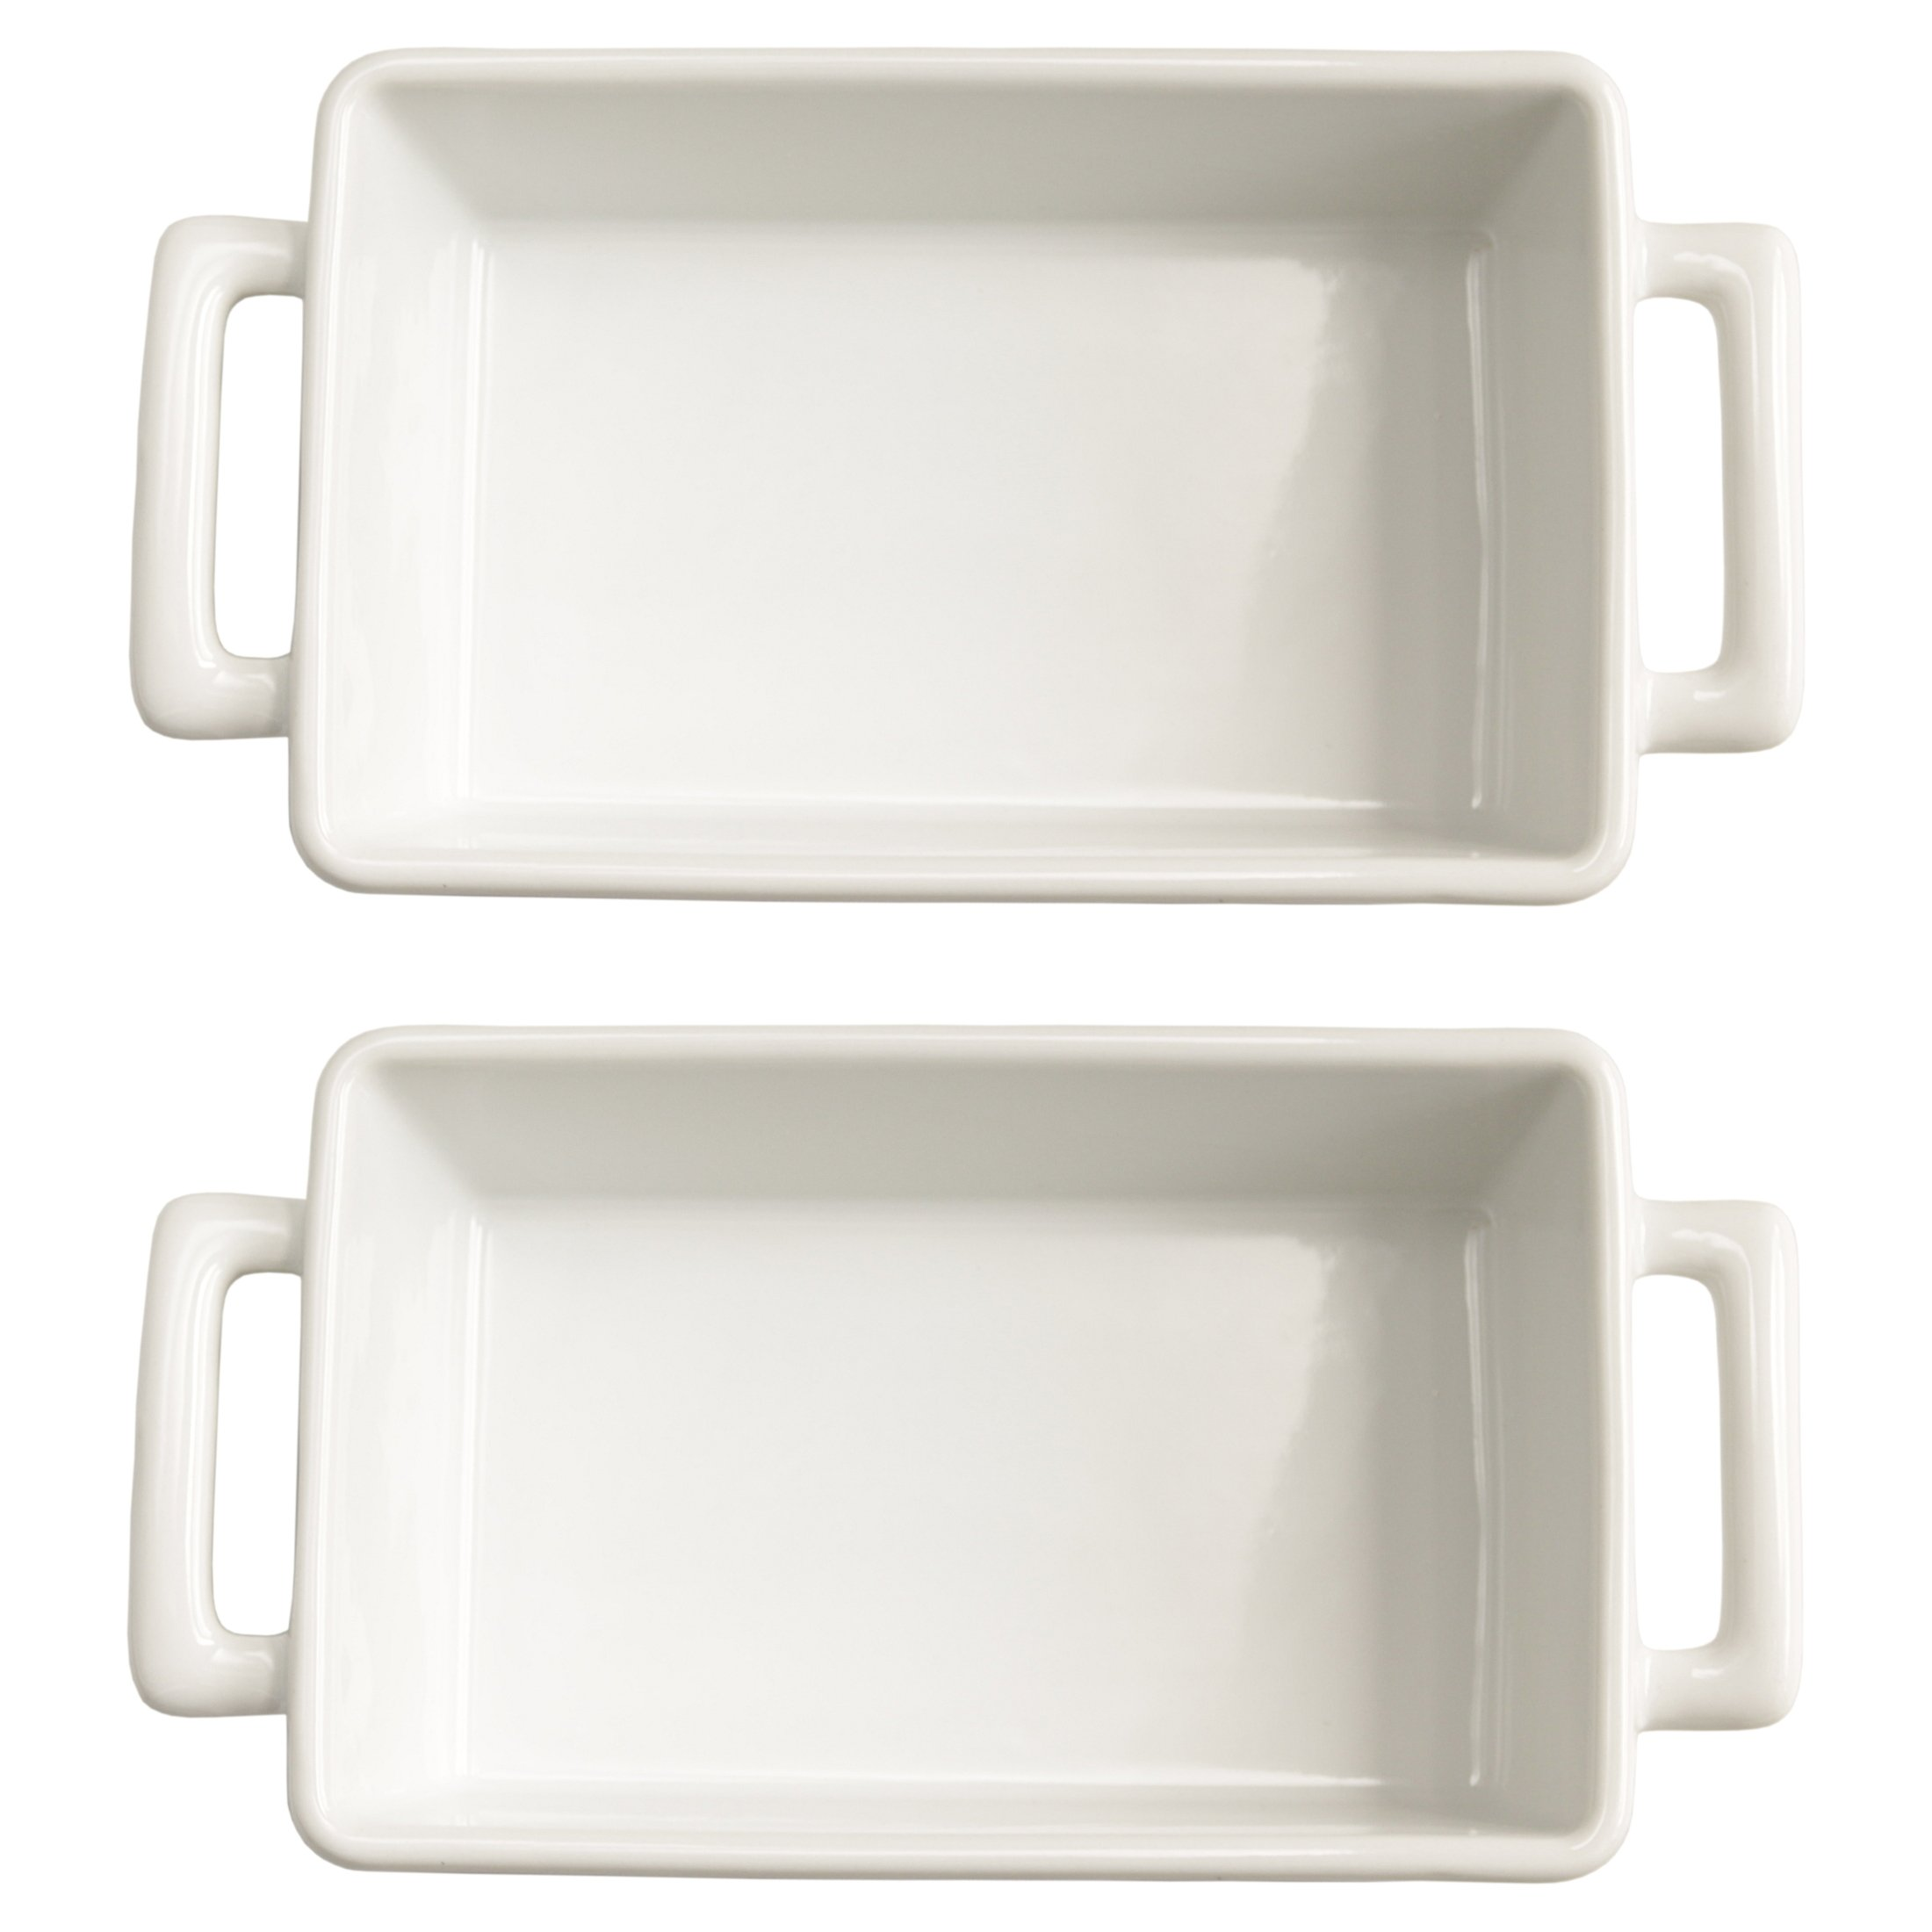 HIC Harold Import Co White Porcelain 8.5 x 5.5 Inch Individual Lasagna Pan, Set of 2 by HIC Harold Import Co.